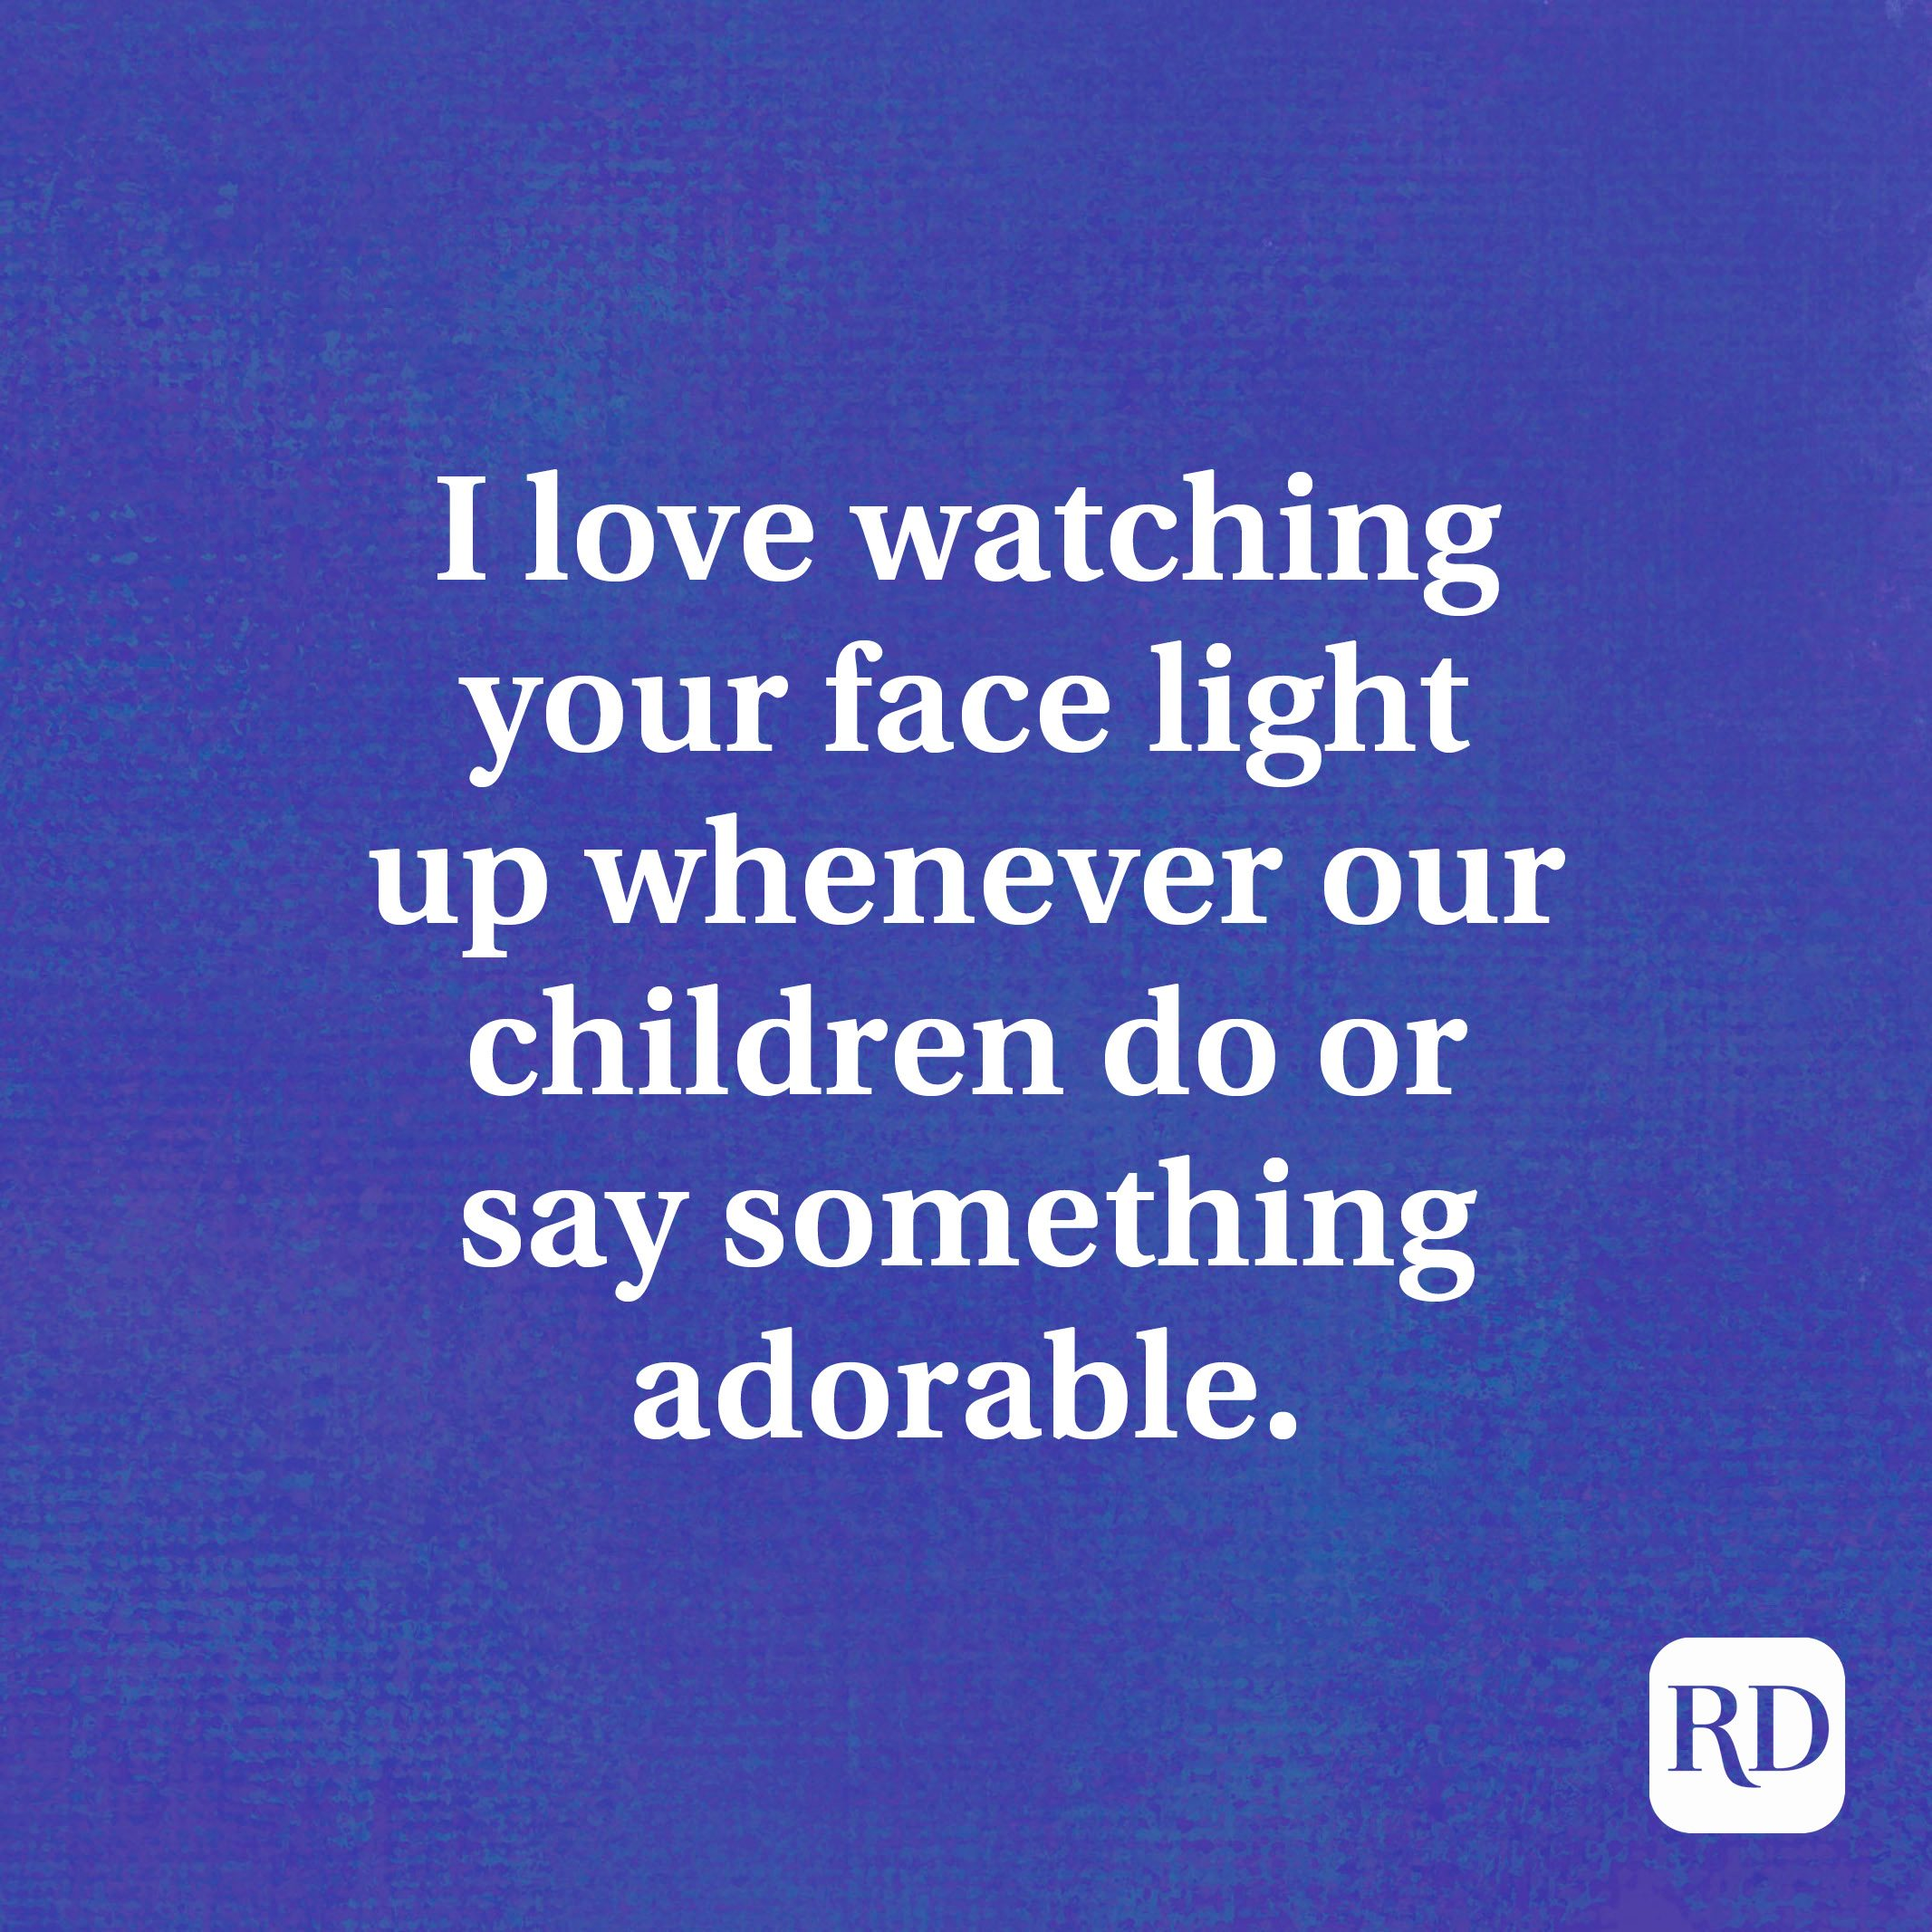 I love watching your face light up whenever our children do or say something adorable.